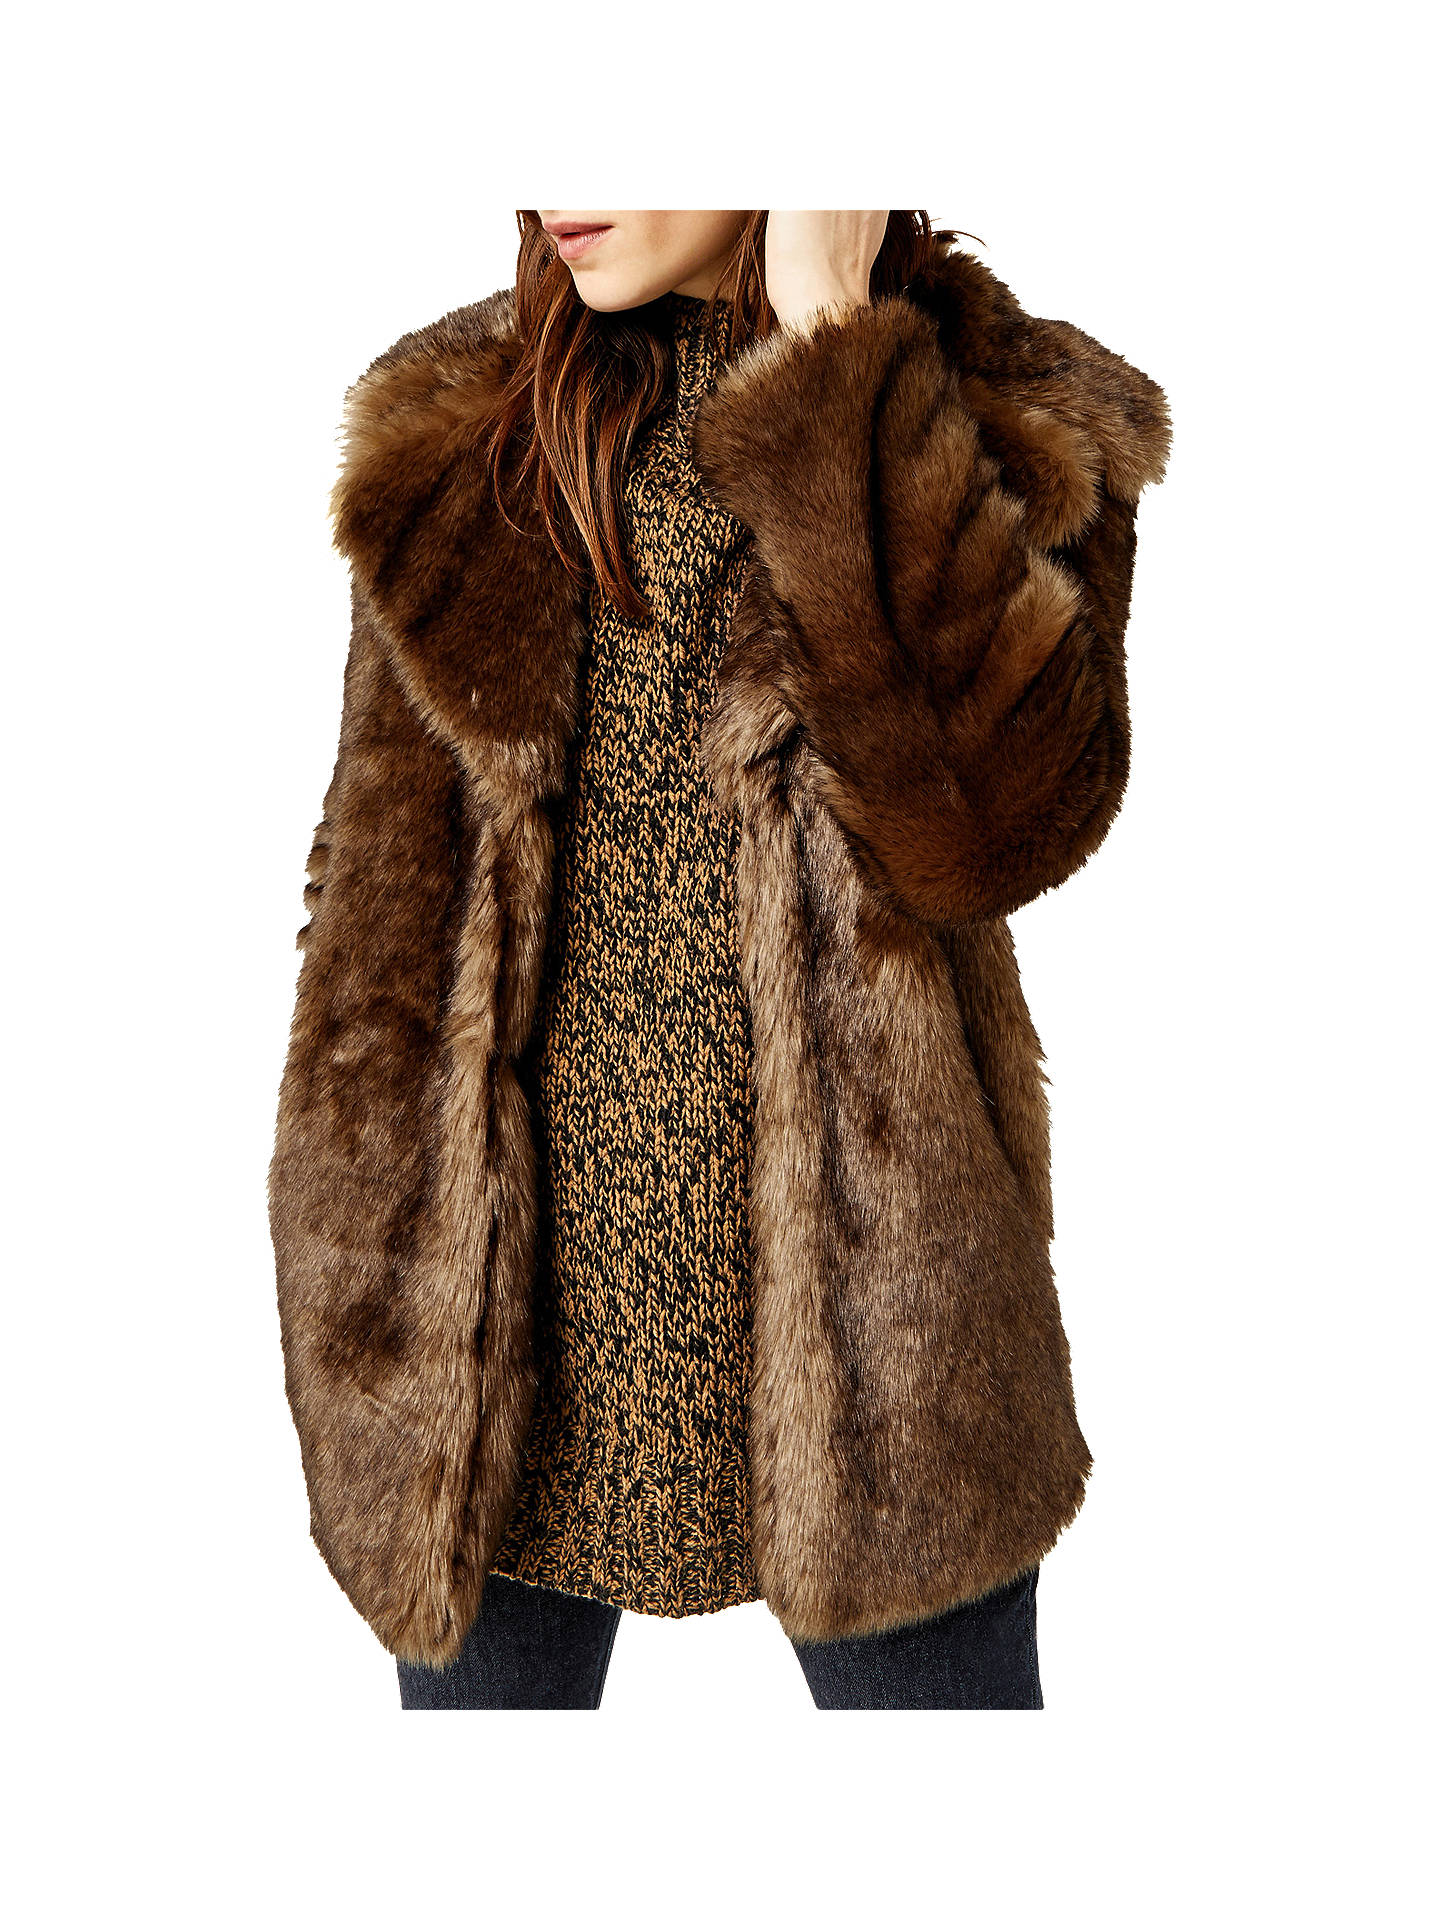 BuyWarehouse Faux Fur Coat fce8b28f792